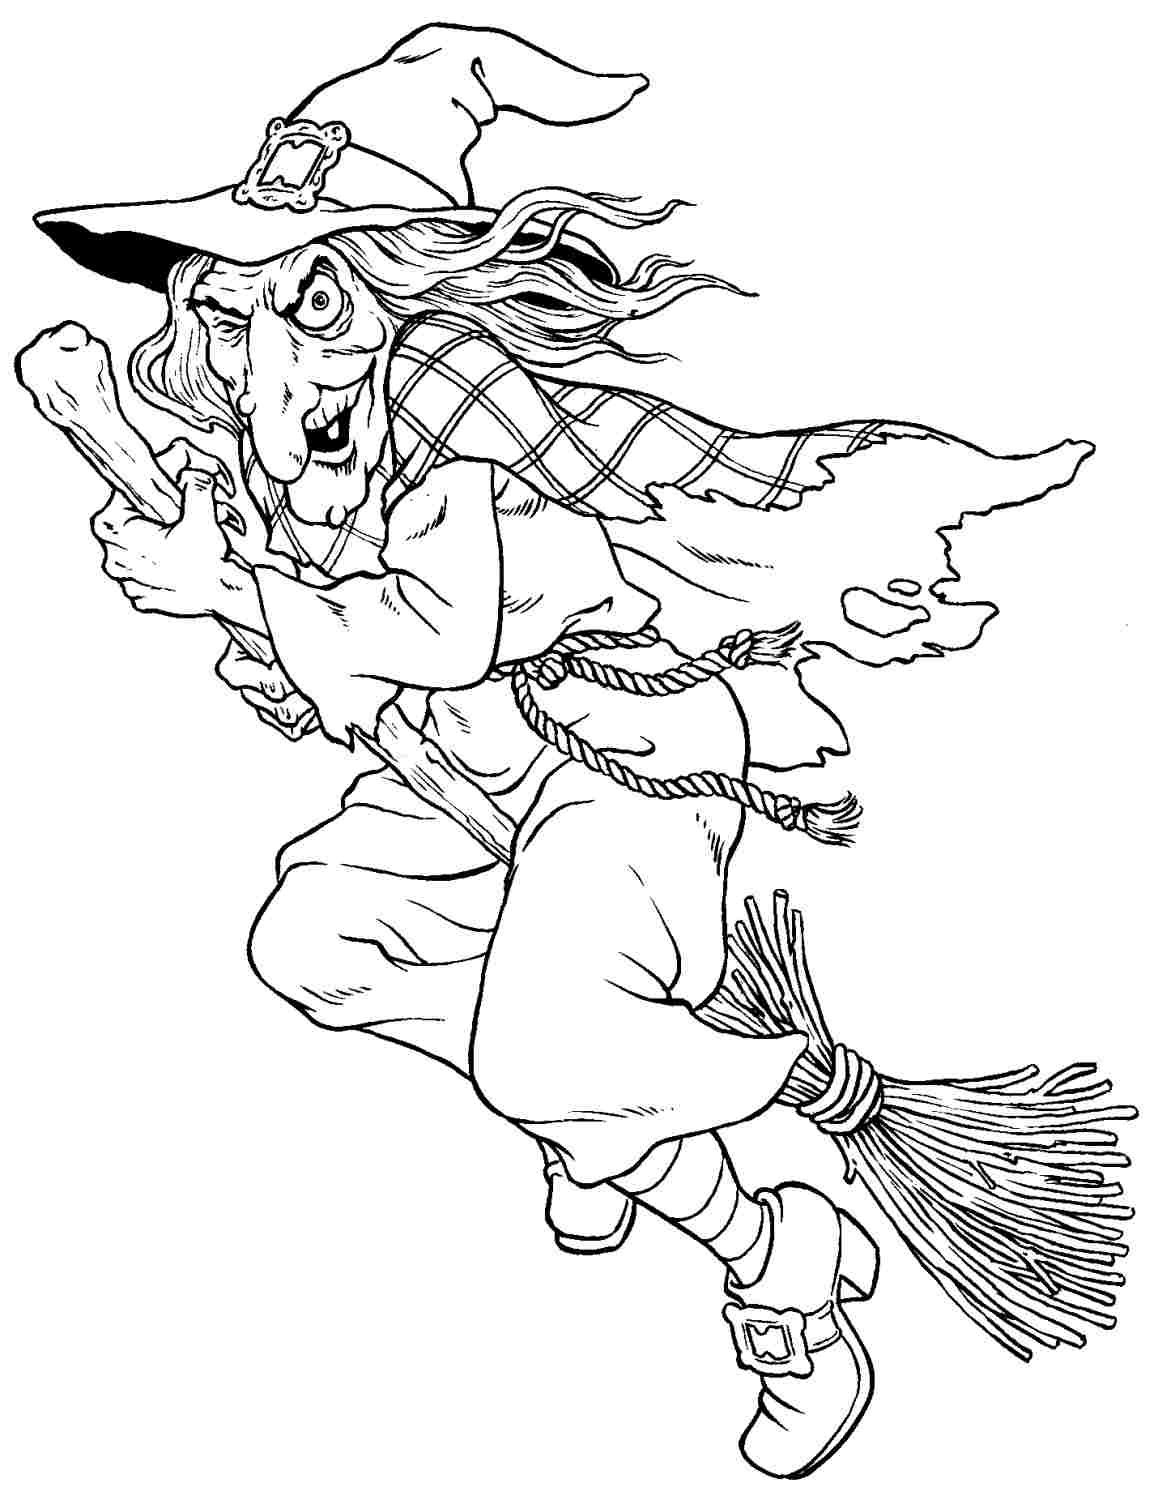 witches colouring pages | Free Halloween Witch Colouring Pages For ...